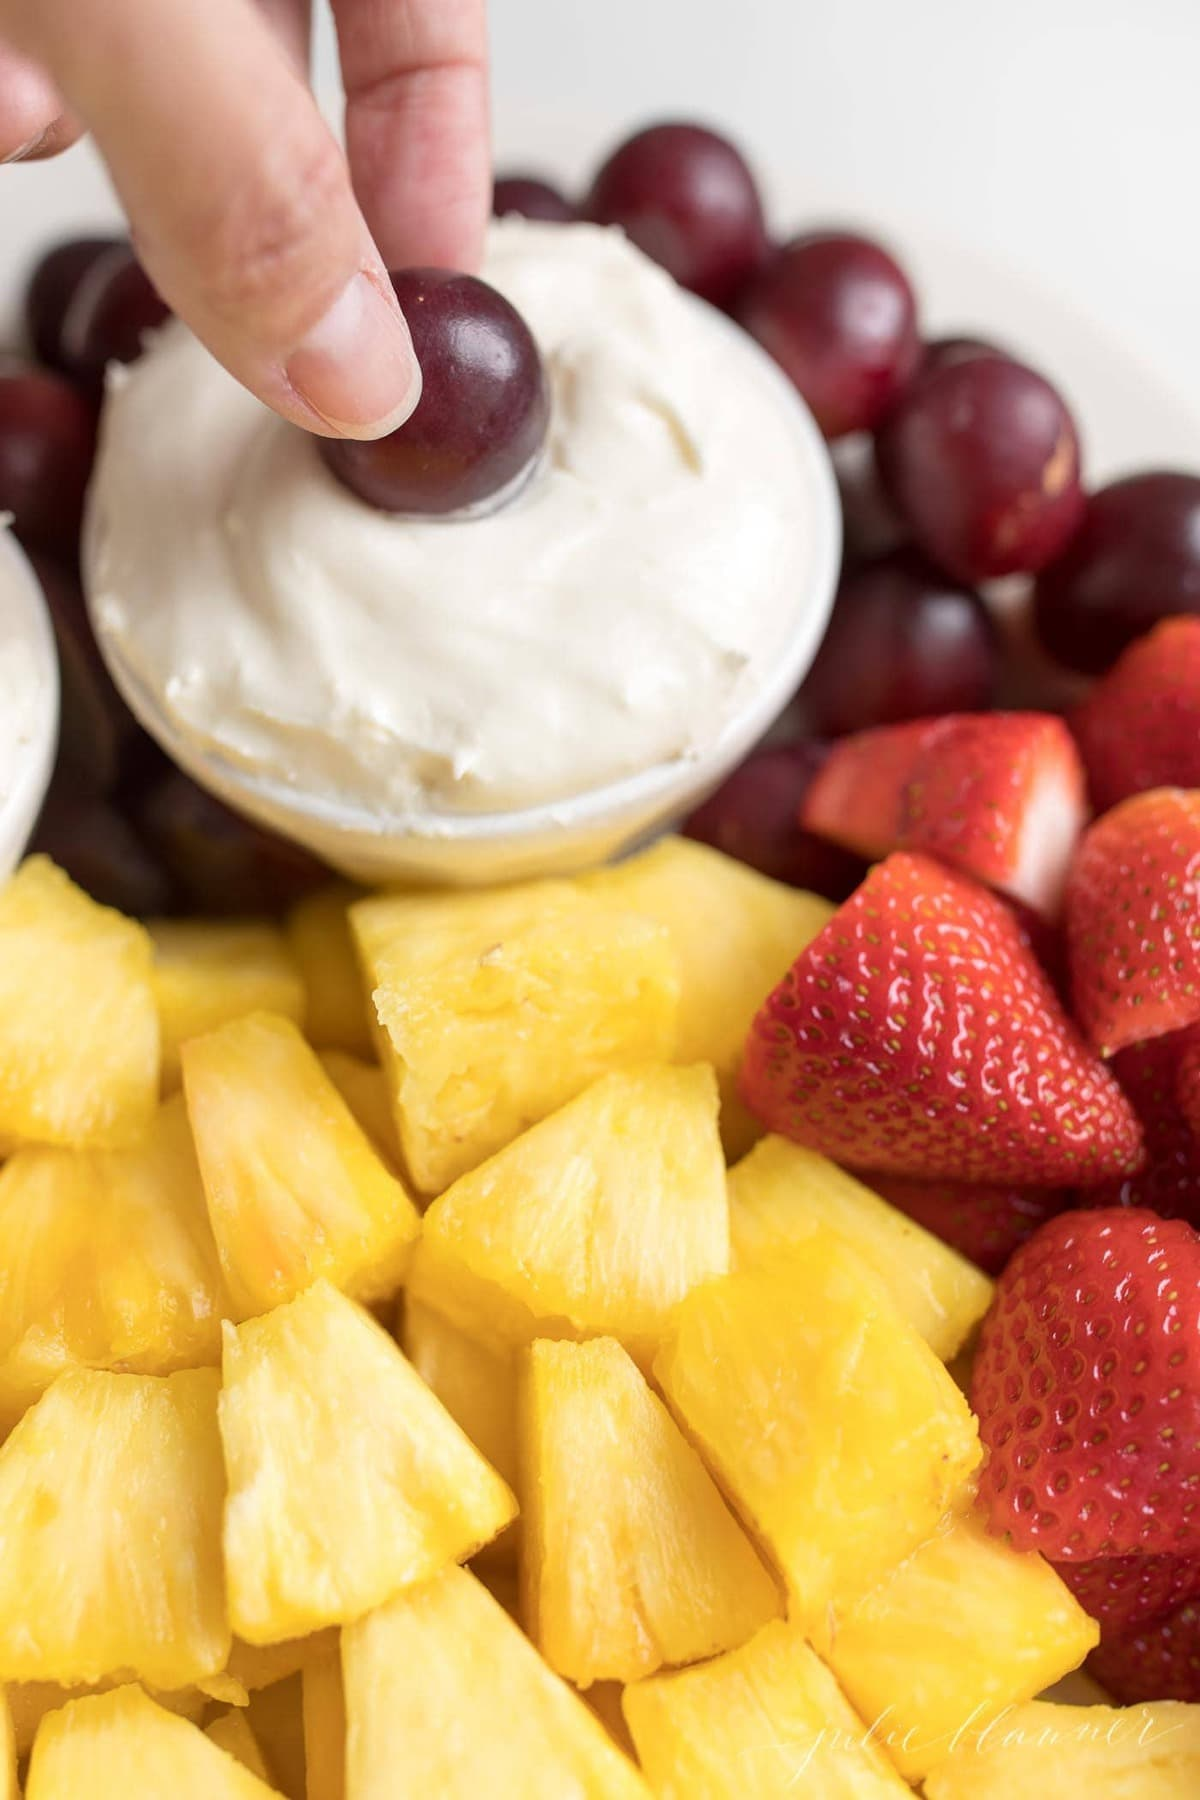 cream cheese fruit dip on a platter of fruit, hand reaching in with a grape to dip.